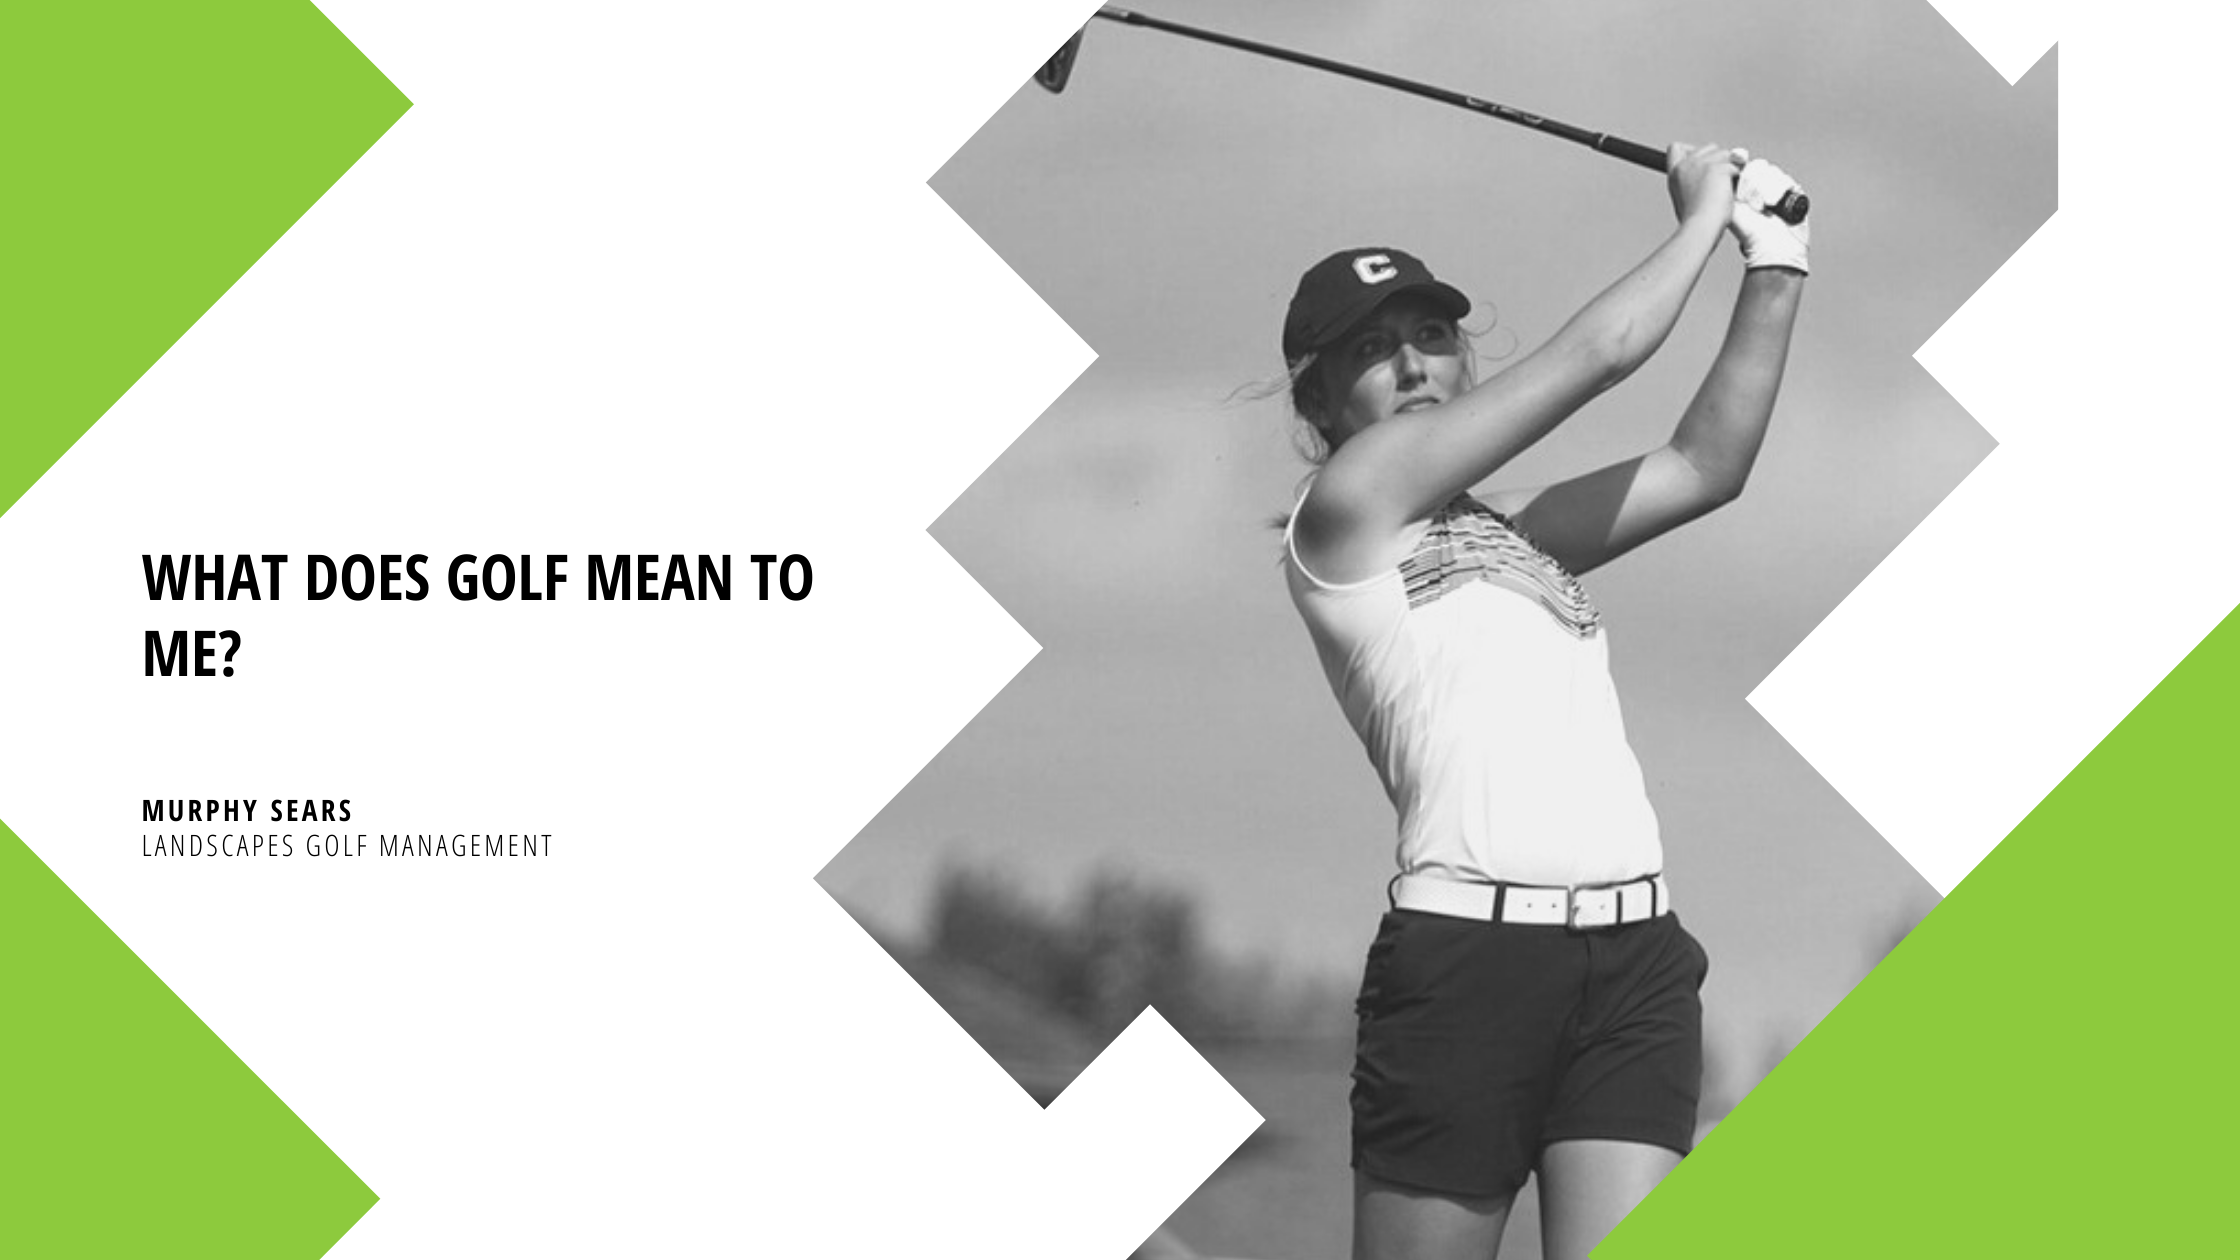 What Does Golf Mean To Me?